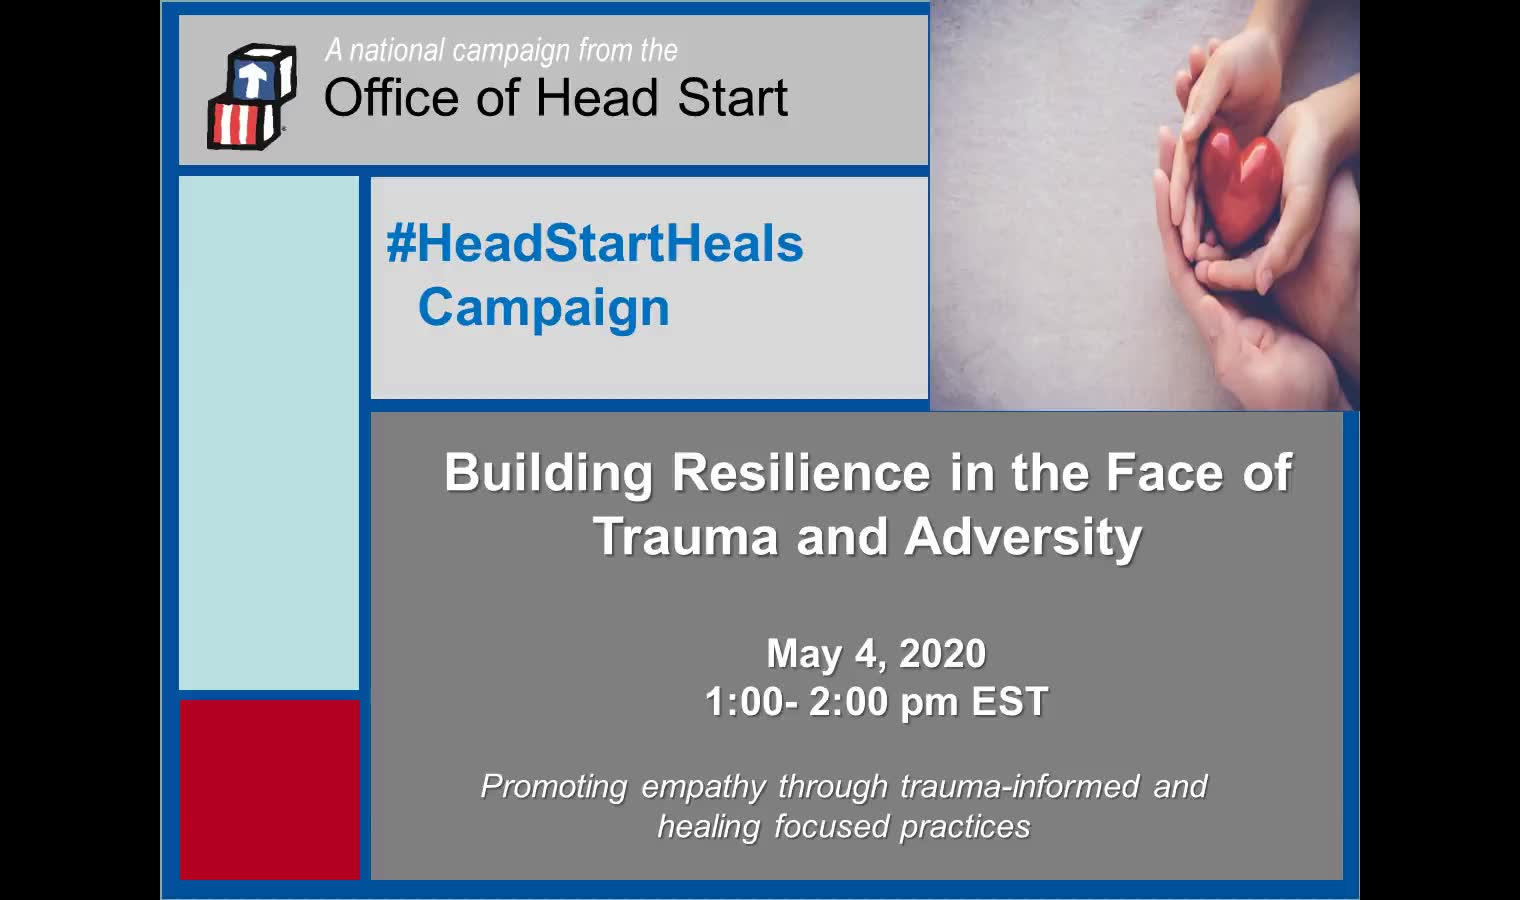 Building Resilience in the Face of Trauma and Adversity